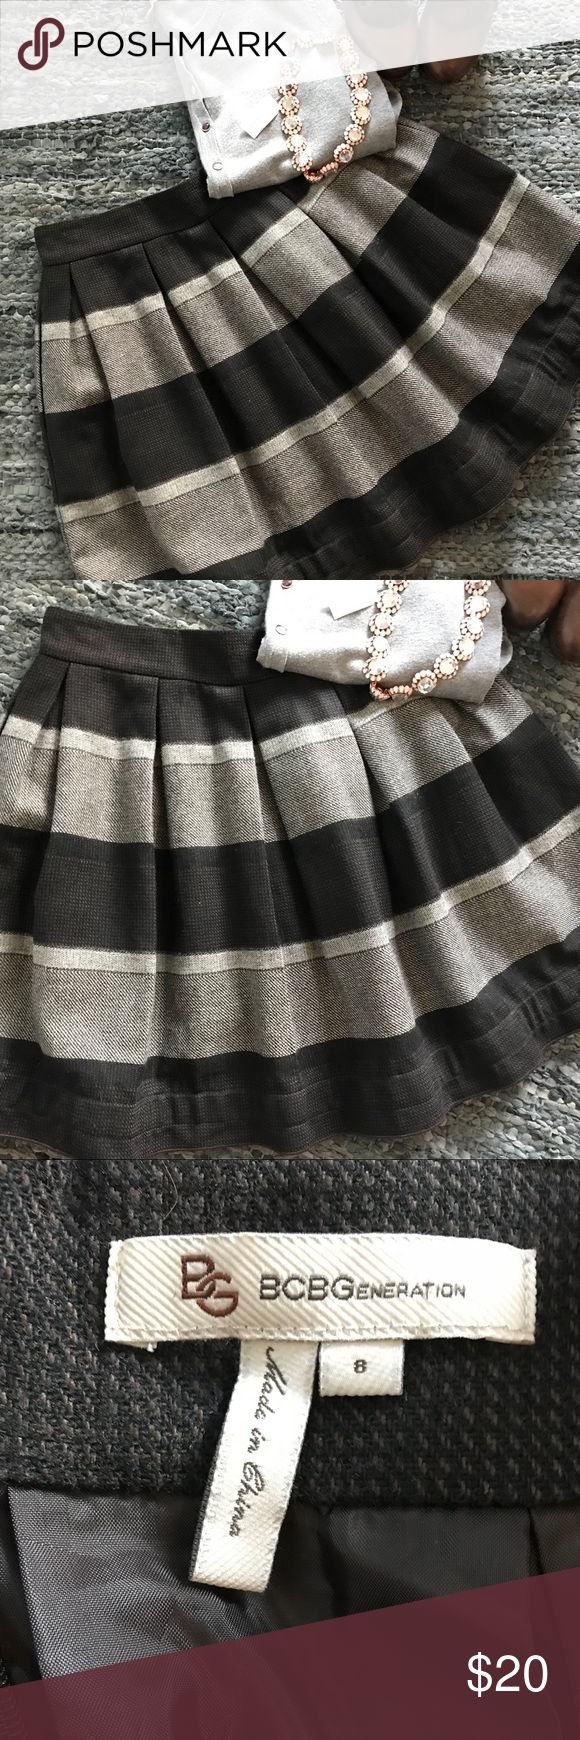 """BCBGeneration fit and flare fall skirt Size 8 Adorable skirt that has a wool look but is washable!  Skirt is about 19"""" long. Necklace and Philosophy sweater under separate listing - bundle for a discount! BCBGeneration Skirts Circle & Skater"""